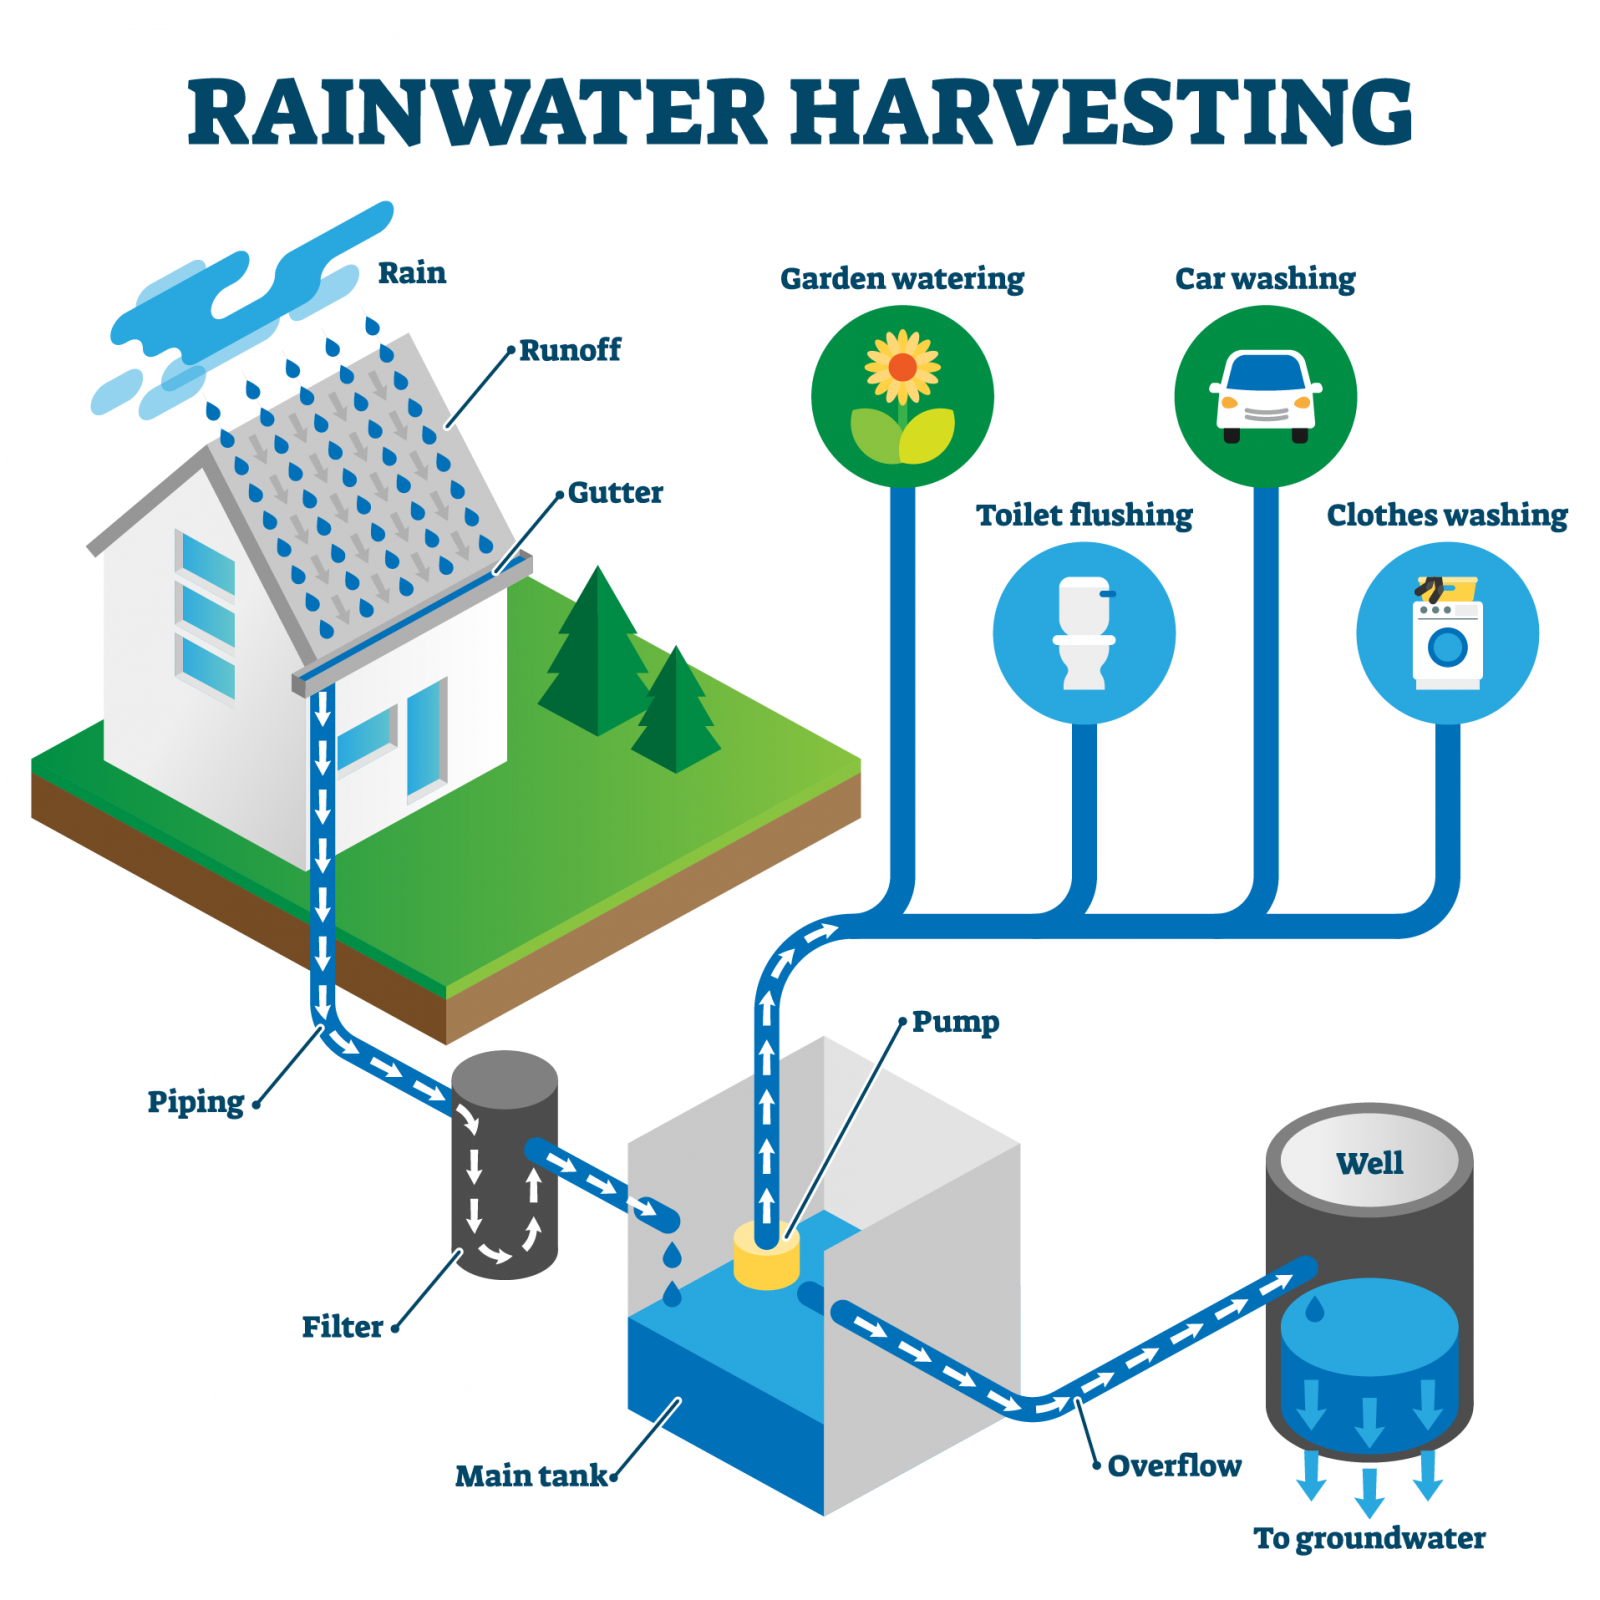 Rainwater harvesting is a great energy saving tip for a net zero home.